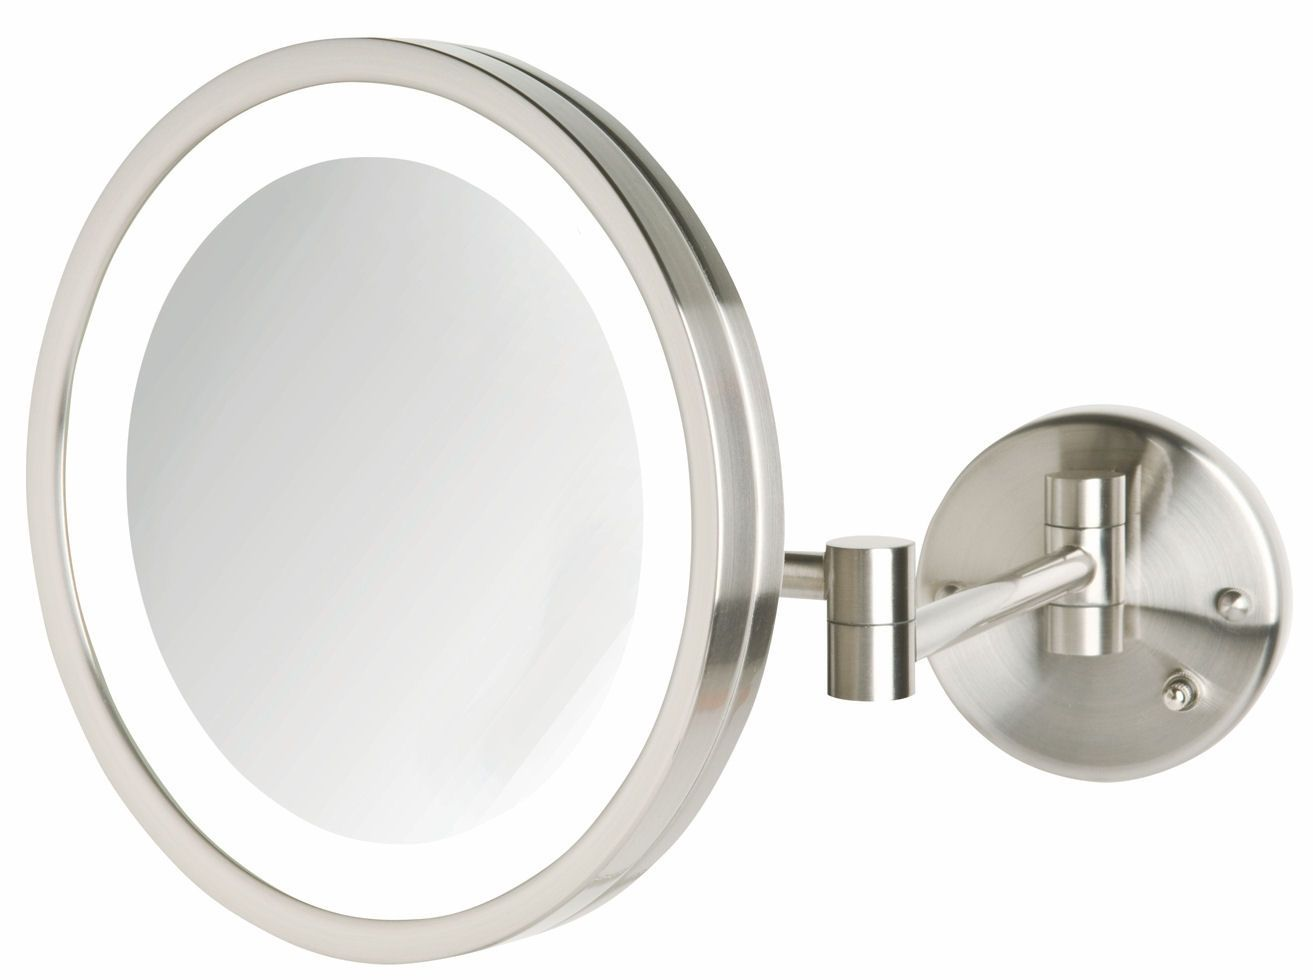 Wall Mounted Cosmetic Mirror With Light Wall Mounted Lighted Makeup Mirror Wall Mounted Makeup Mirror Wall Mounted Magnifying Mirror